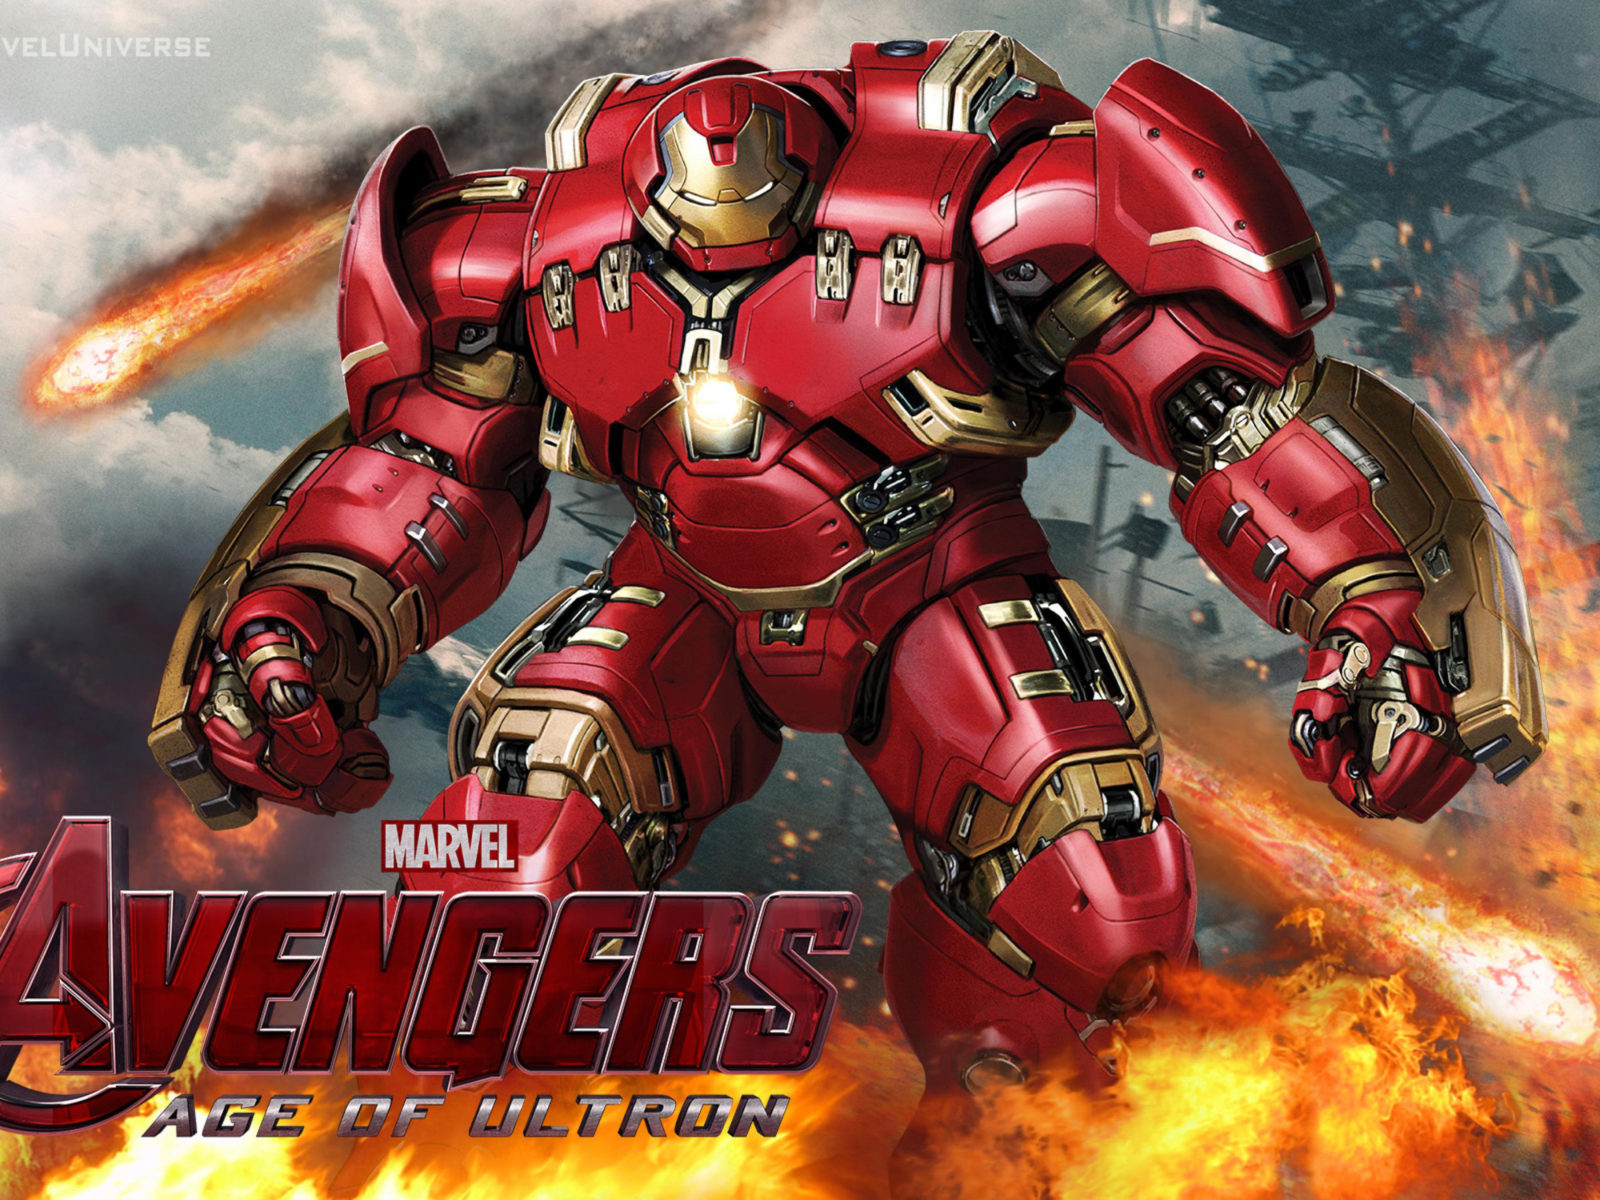 Wallpaper Cars Movie Avengers Age Of Ultron Hulk Buster Desktop Hd Wallpaper